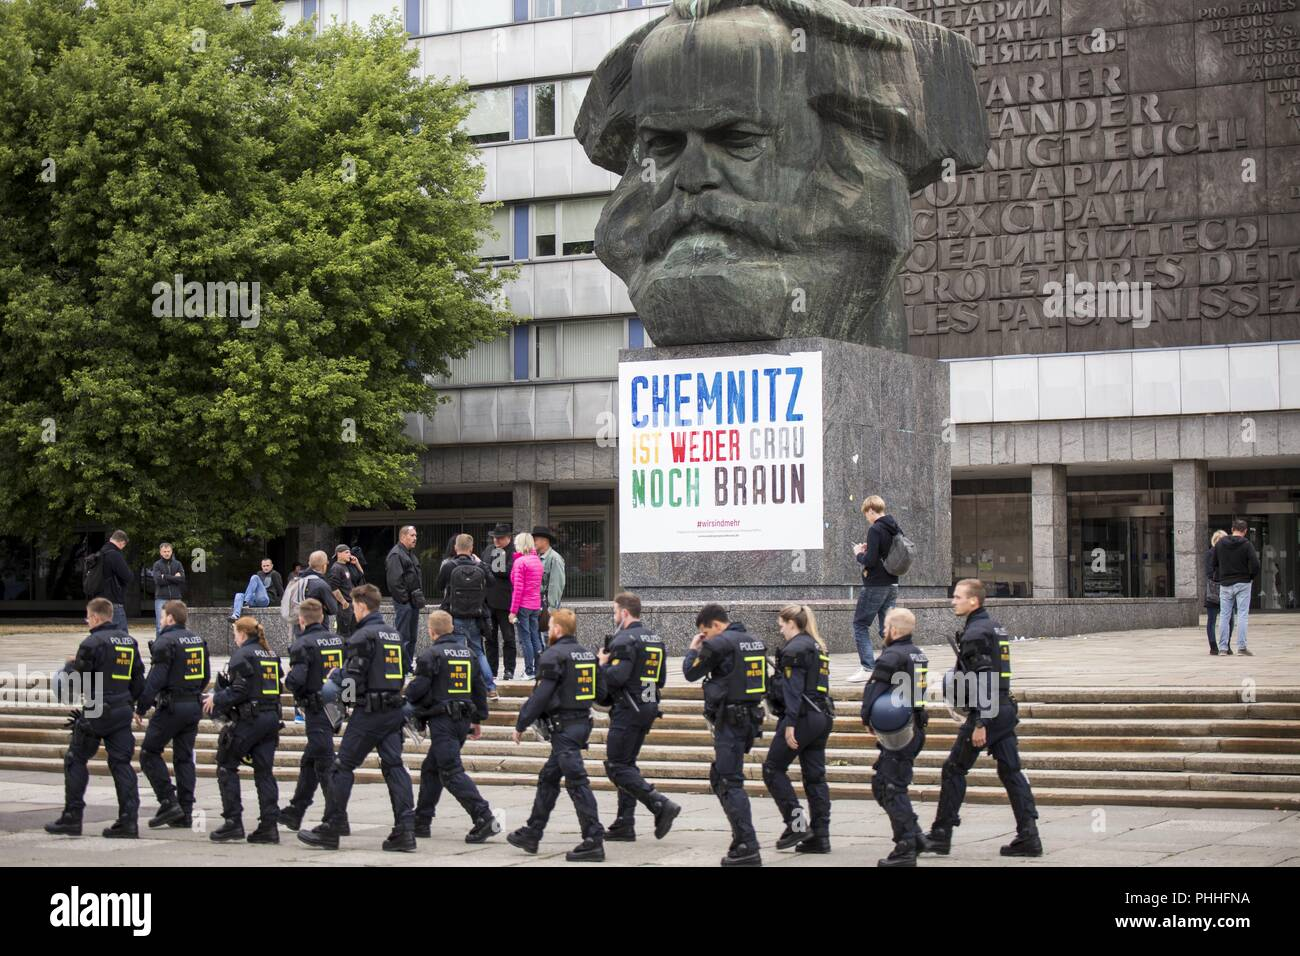 September 1, 2018 - Chemnitz, Saxony, Germany - Memorial and mourning of Daniel, who was stabbed to death last week (Credit Image: © Jannis Grosse/ZUMA Wire) Stock Photo